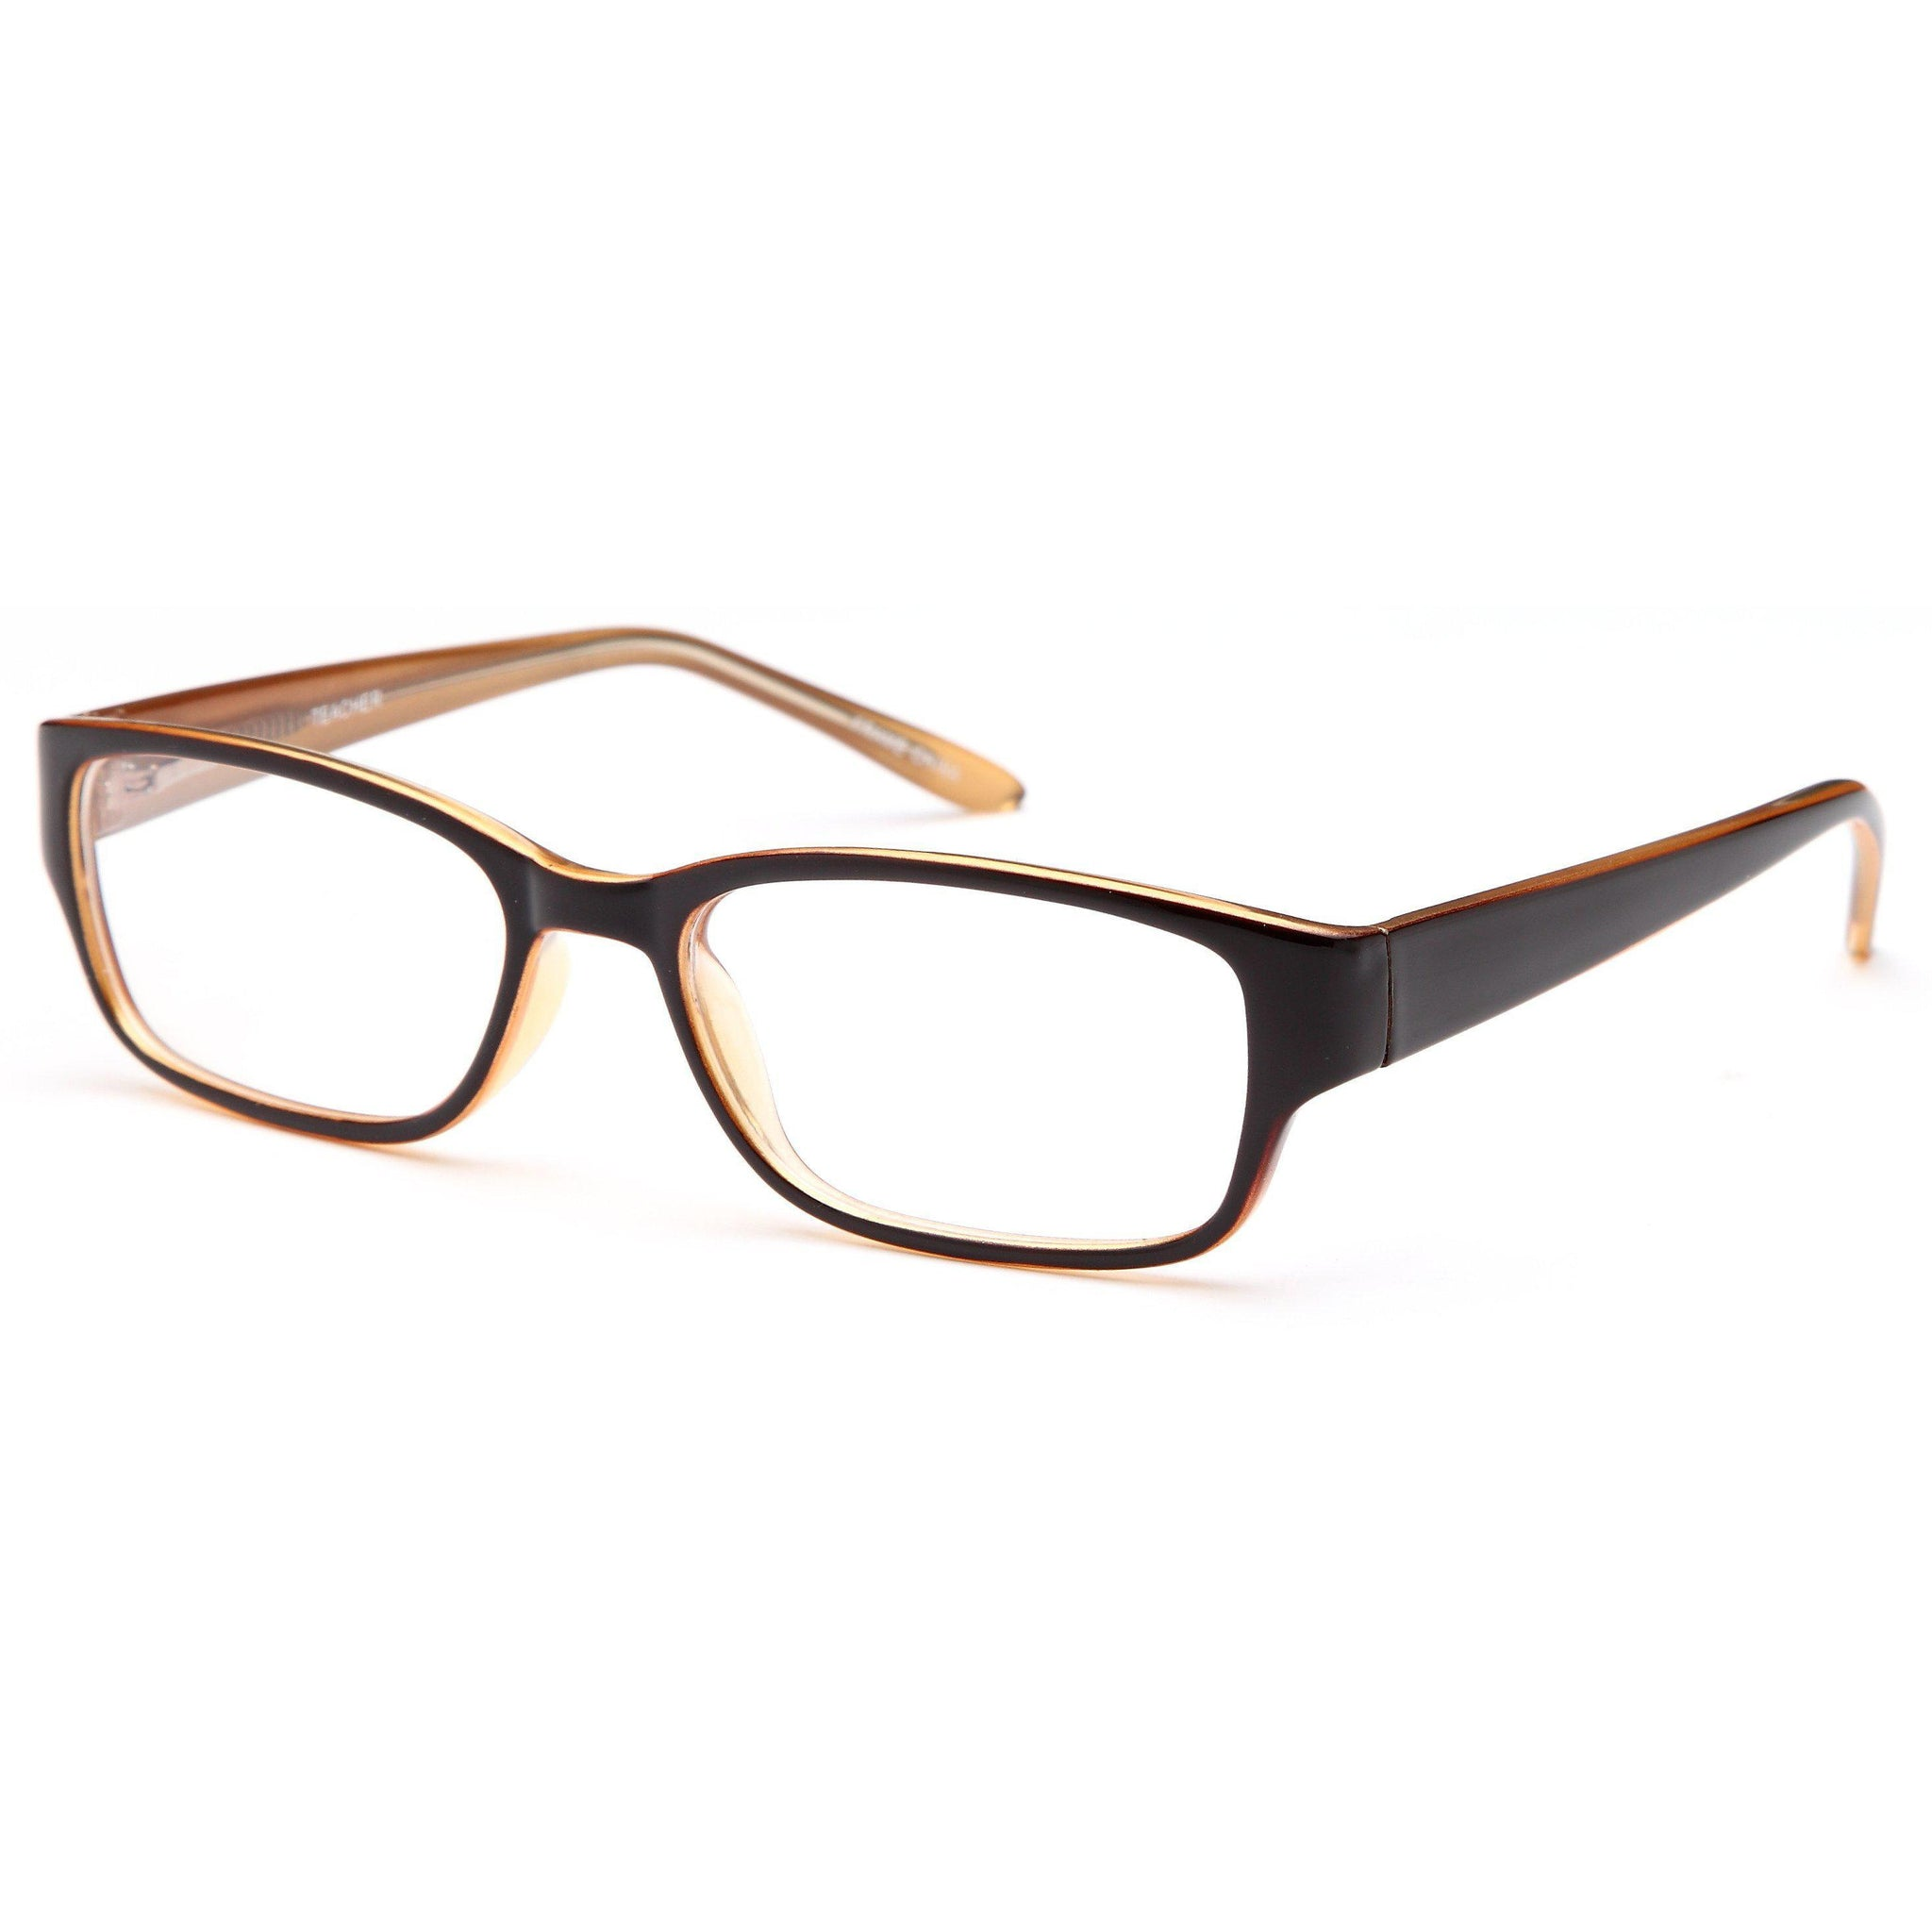 Everyday Prescription Glasses TEACHER Frame